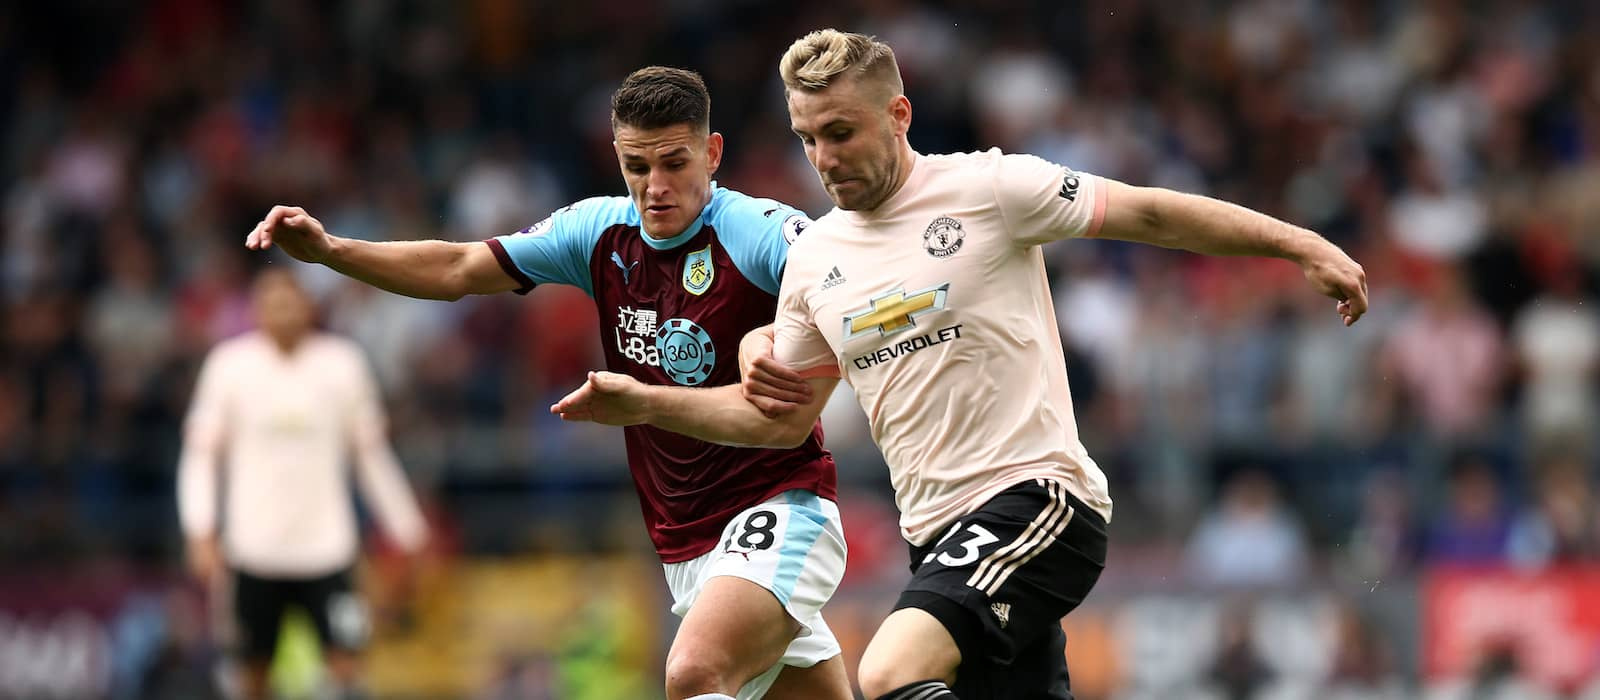 Manchester United fans happy with Luke Shaw's performance vs Burnley